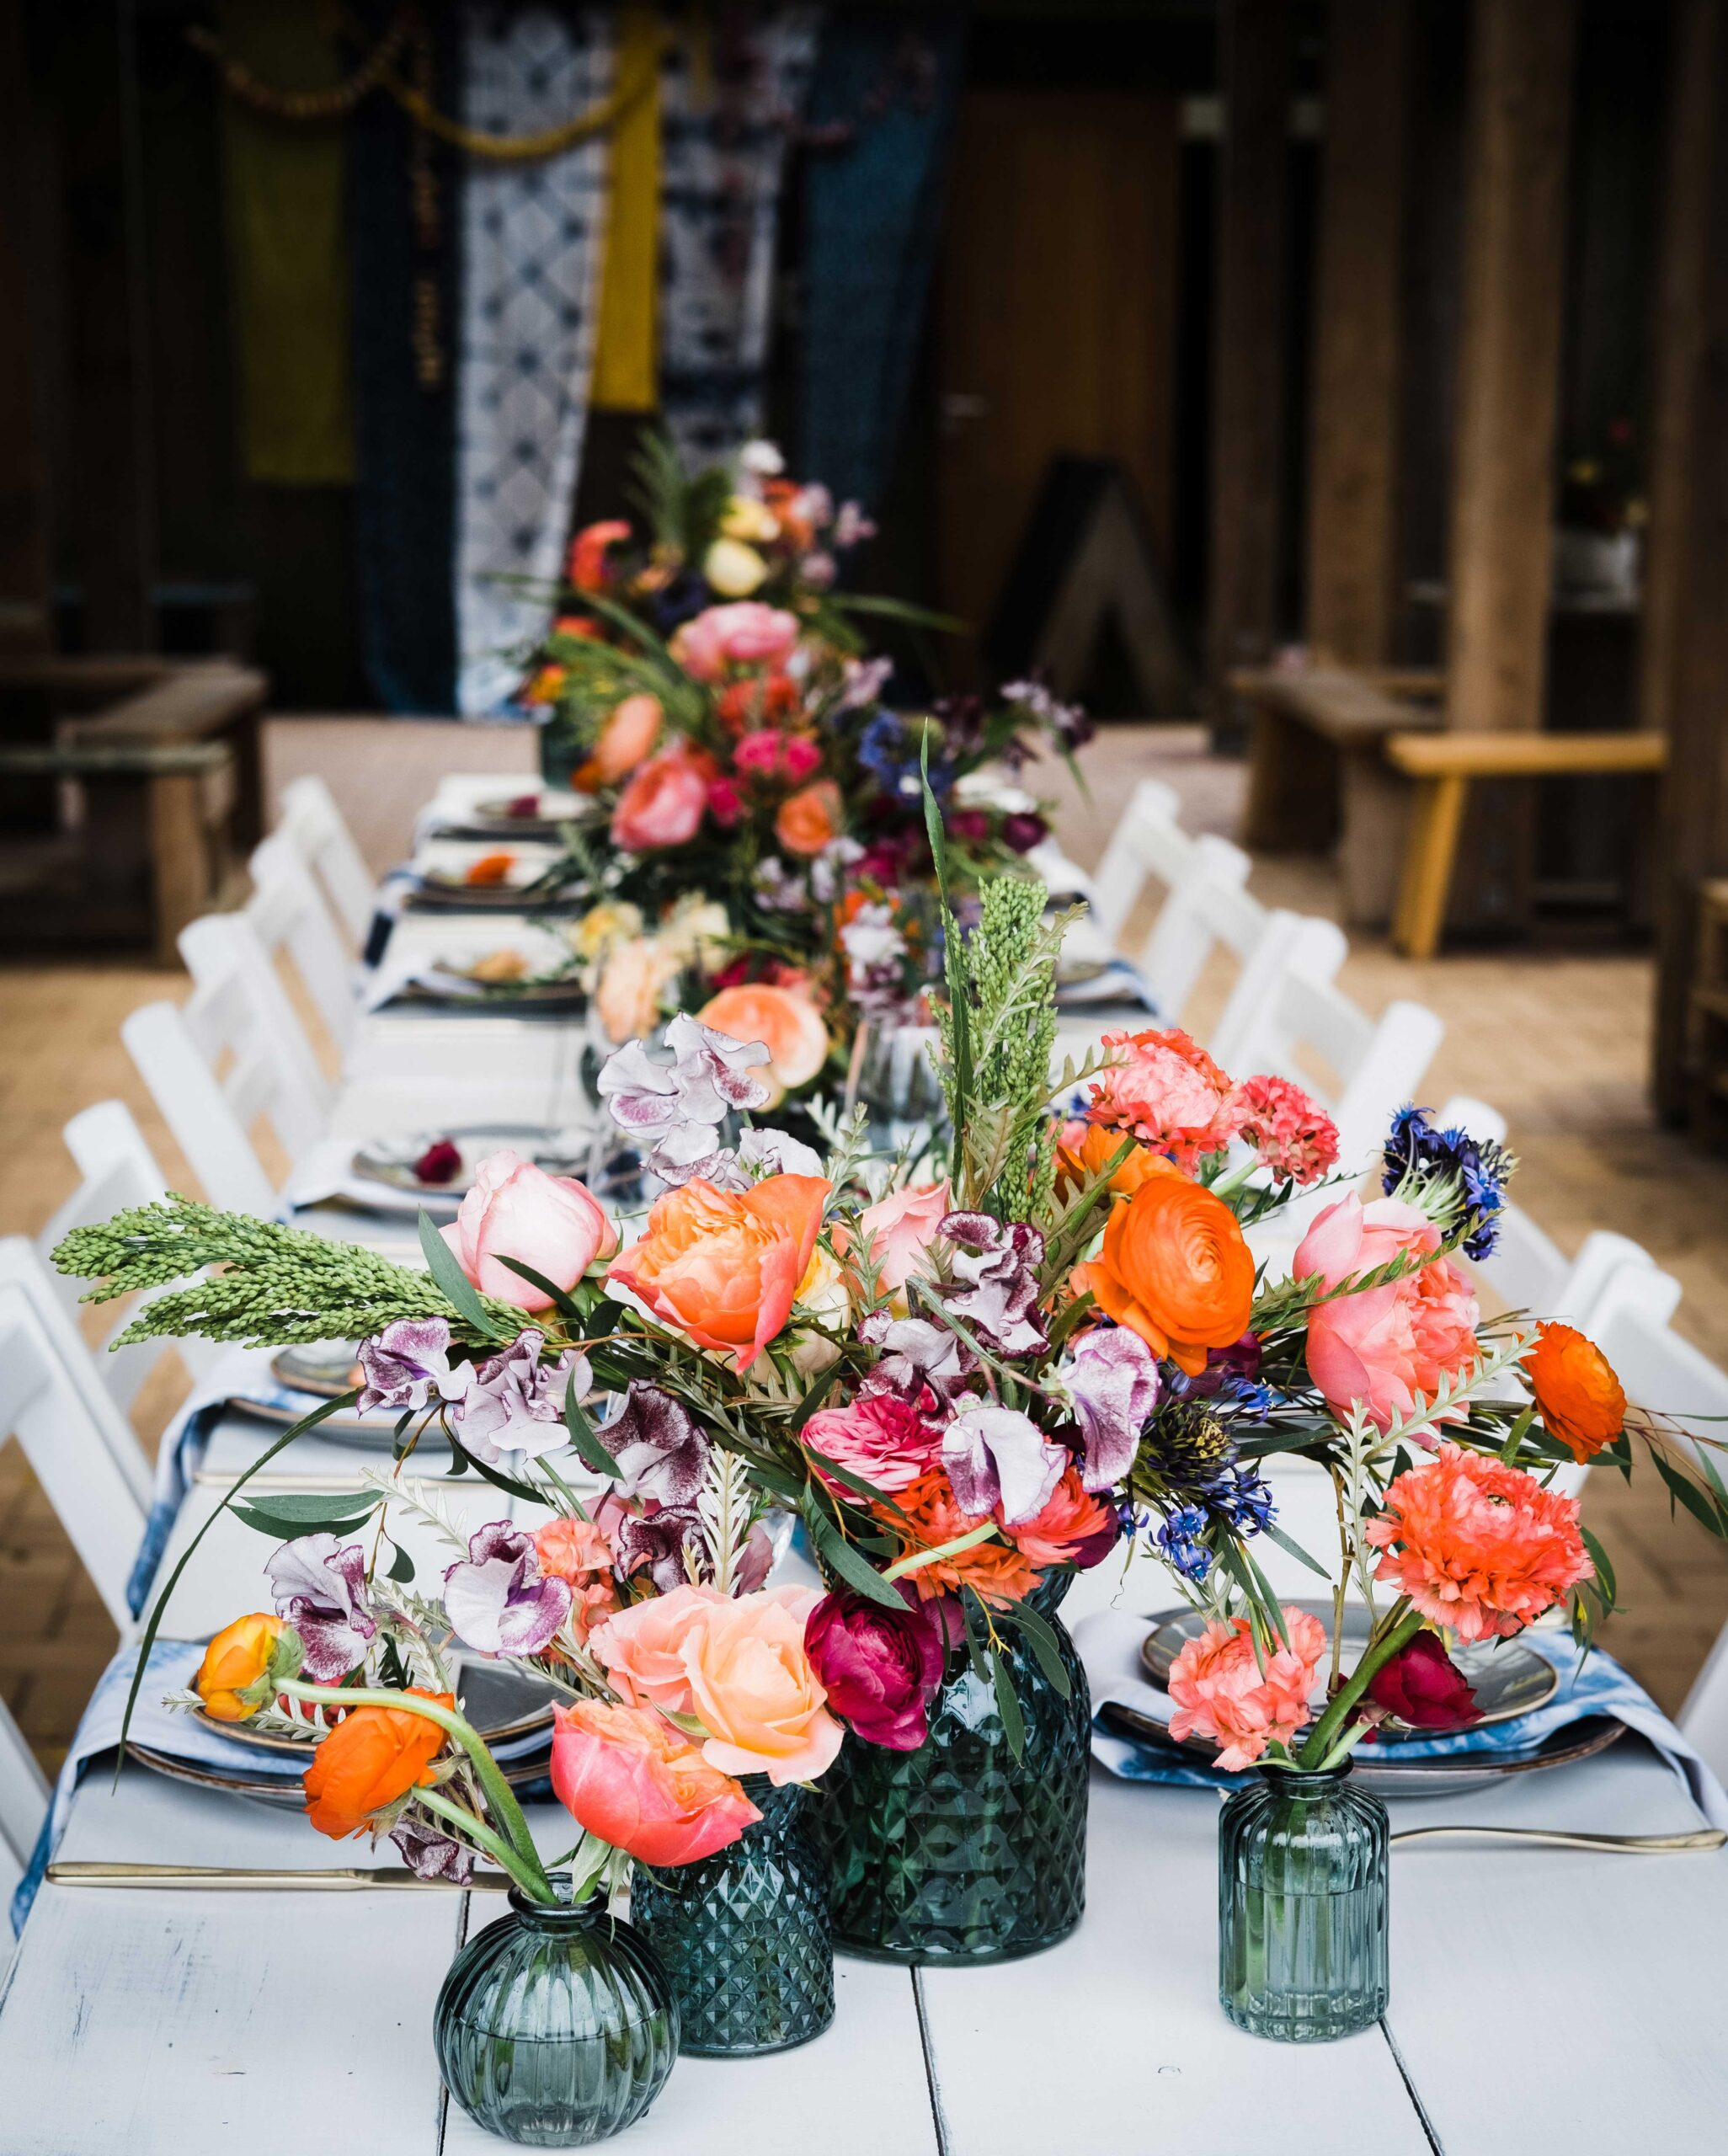 Styled wedding table setting with colour glass jars and bright flowers